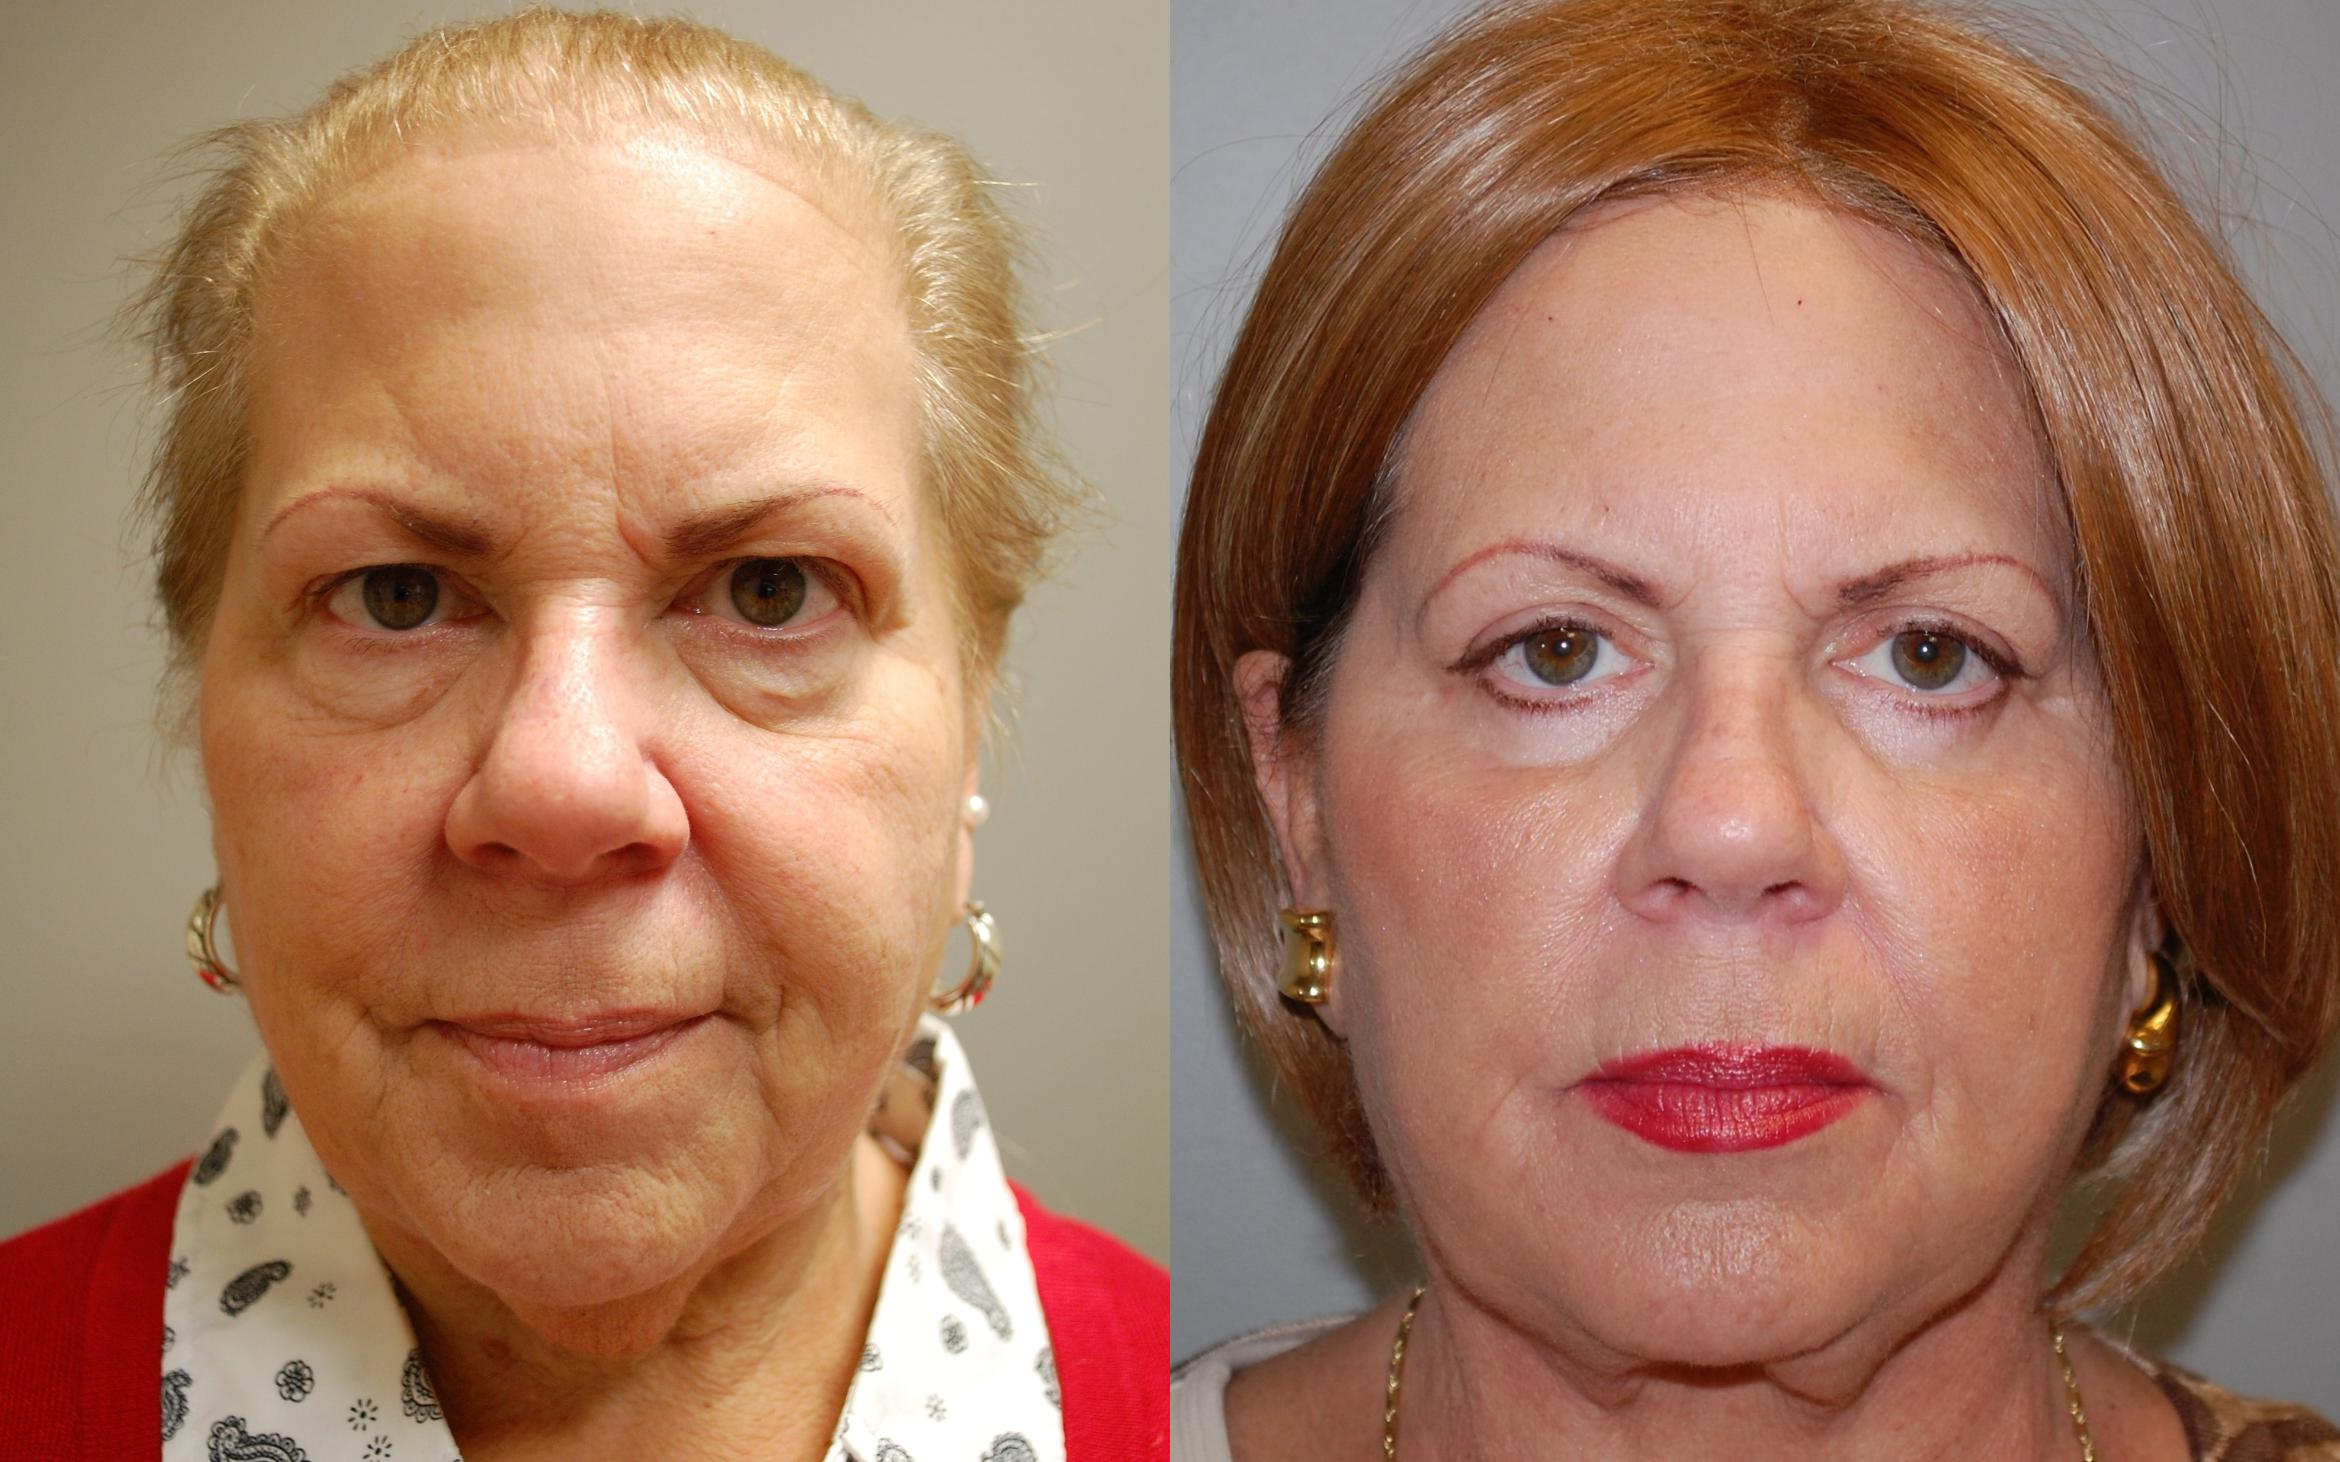 Blepharoplasty Before & After Photo | Springfield, MA | Aesthetic Plastic & Reconstructive Surgery